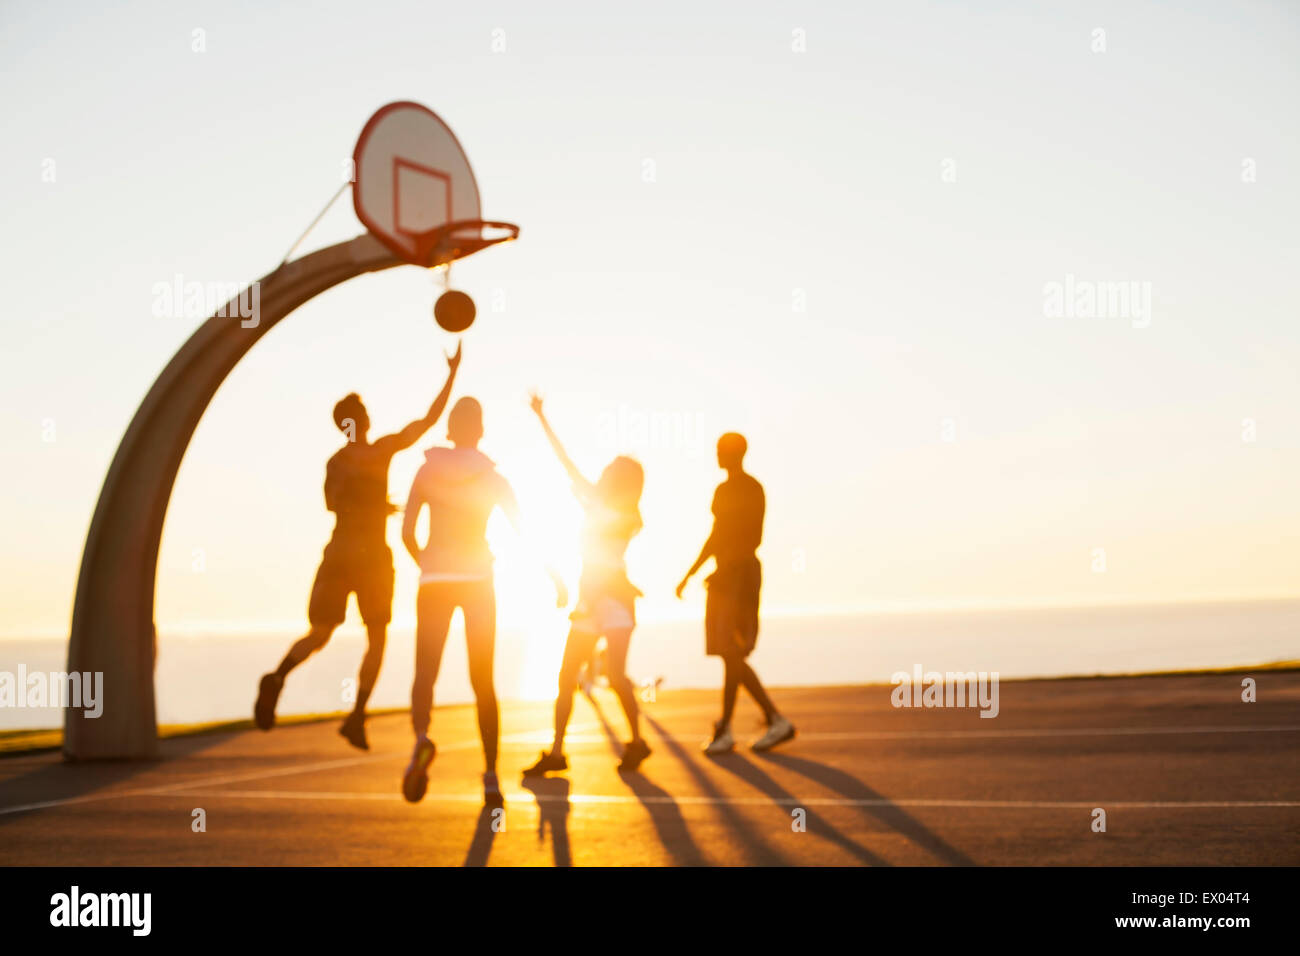 Friends Playing Basketball High Resolution Stock Photography And Images Alamy